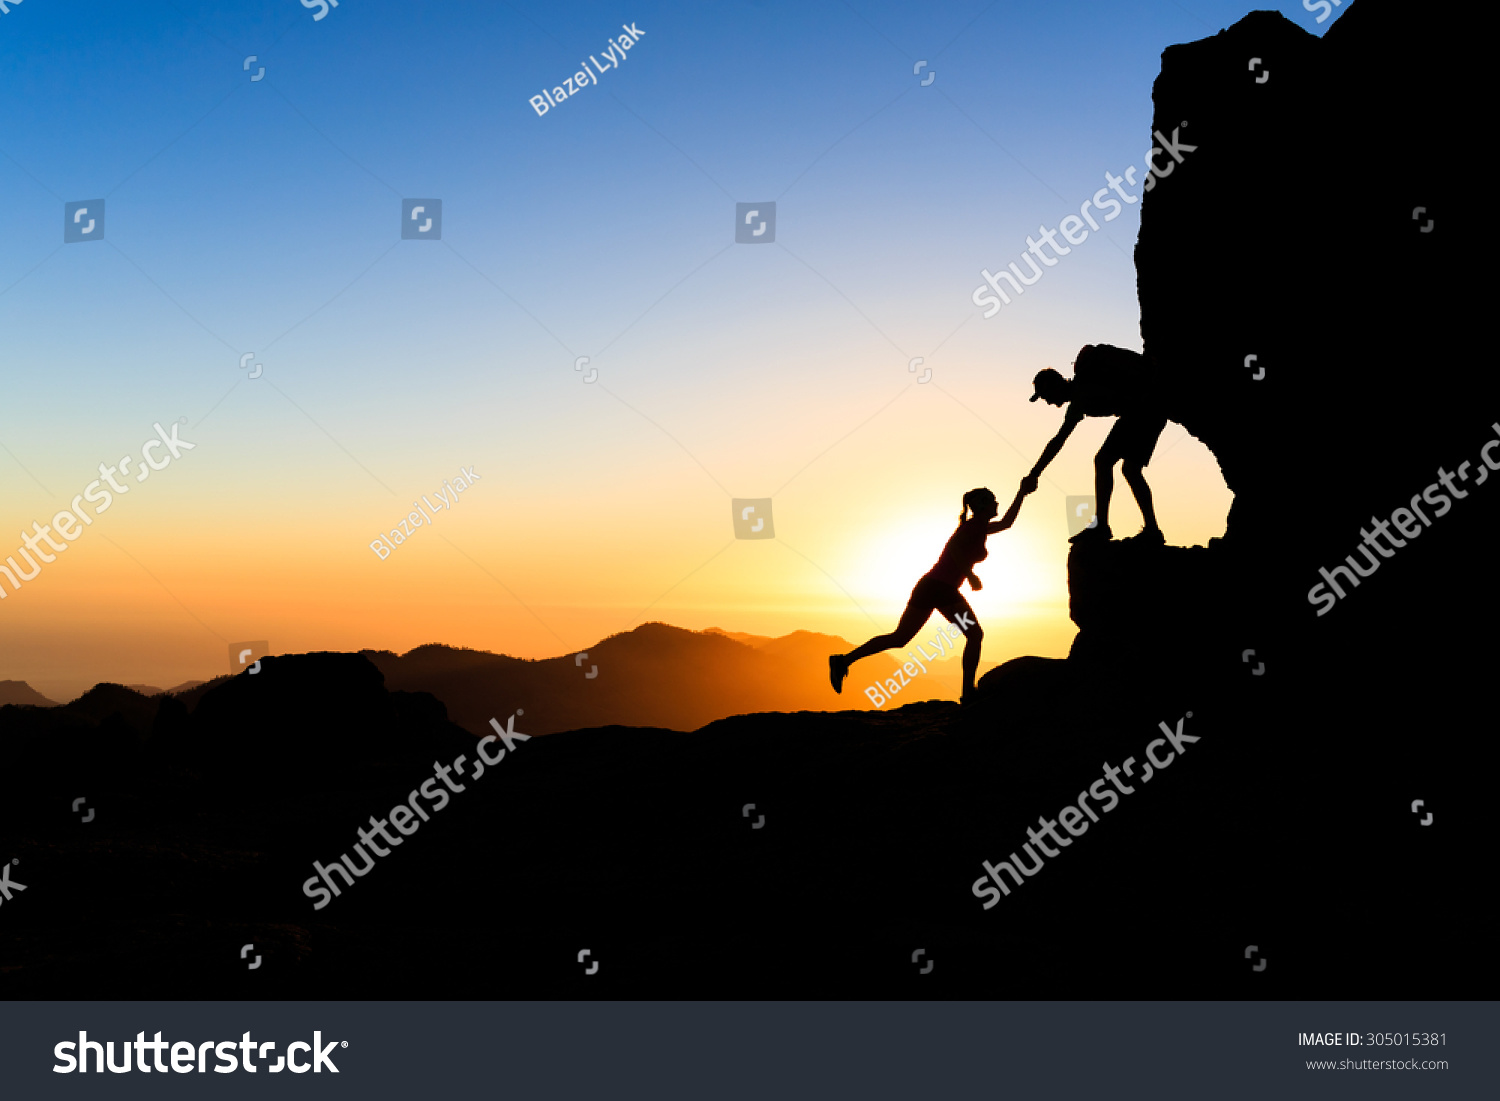 teamwork trust couple helping hand trust stock photo  teamwork trust couple helping hand trust help silhouette in mountains team of climbers man and